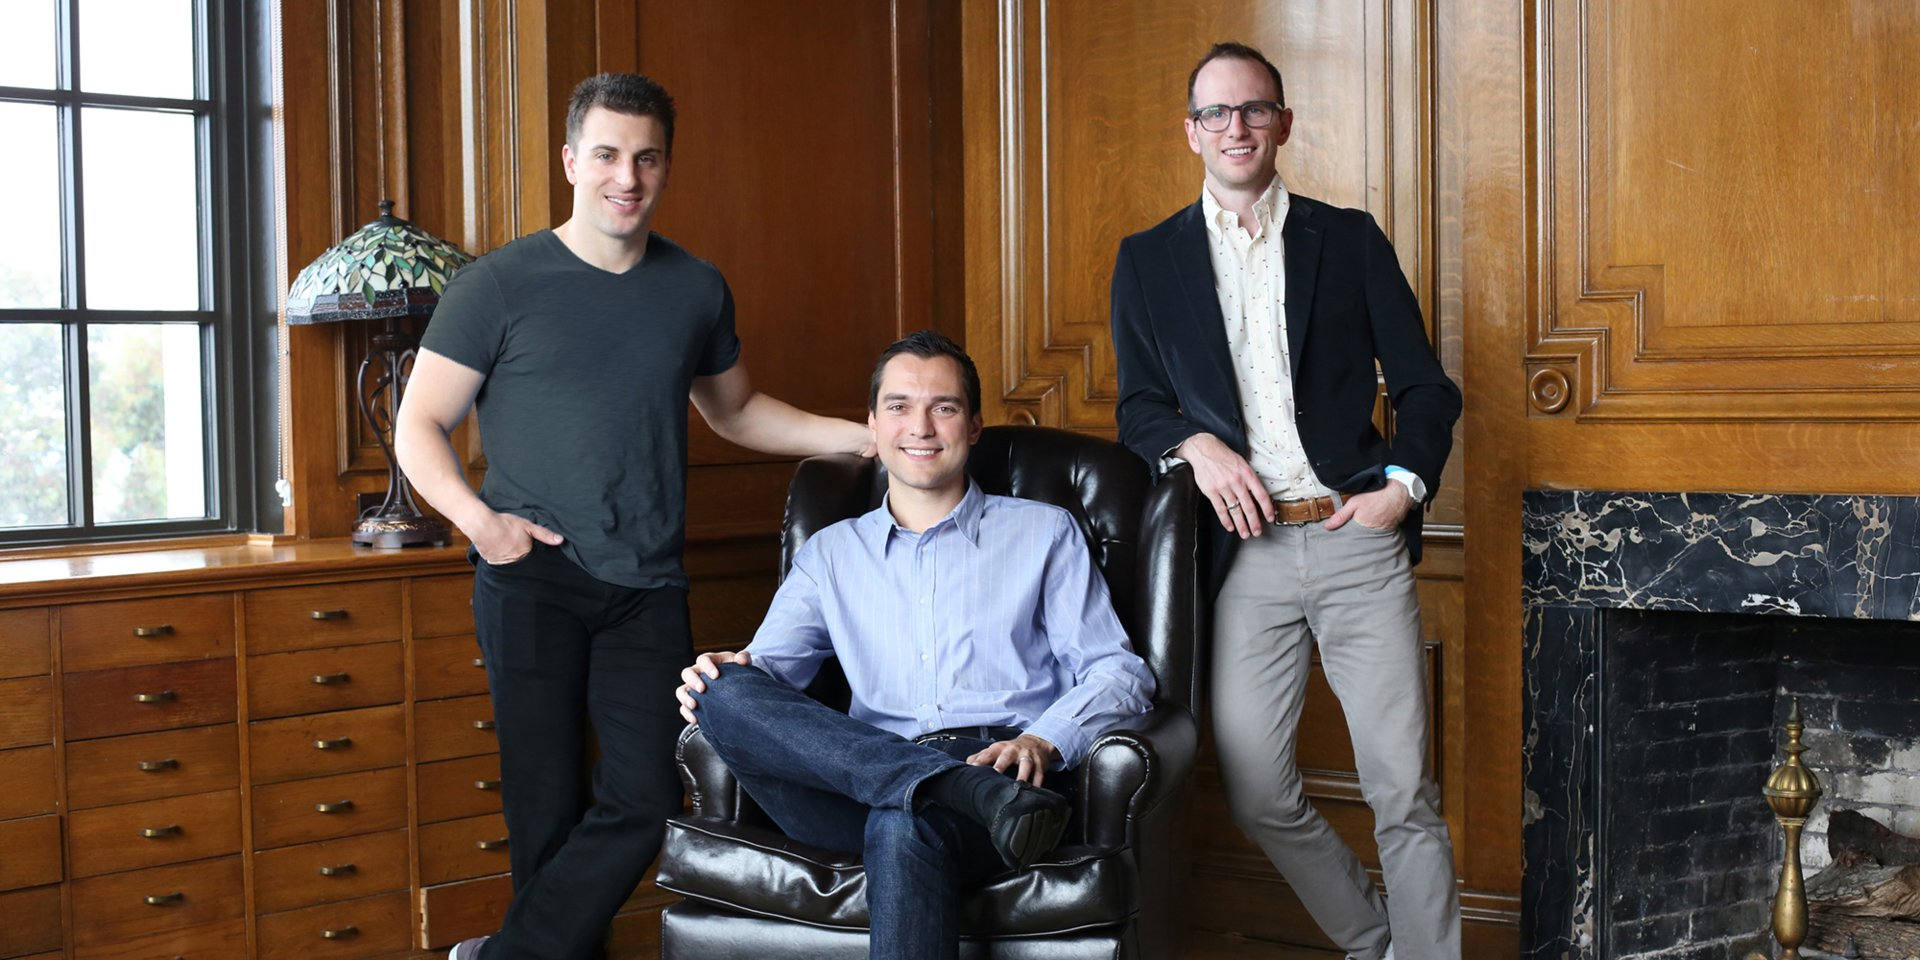 See the first-ever investor pitch deck for $31 billion startup Airbnb' which has raised over $3 billion and is planning to go public in 2020